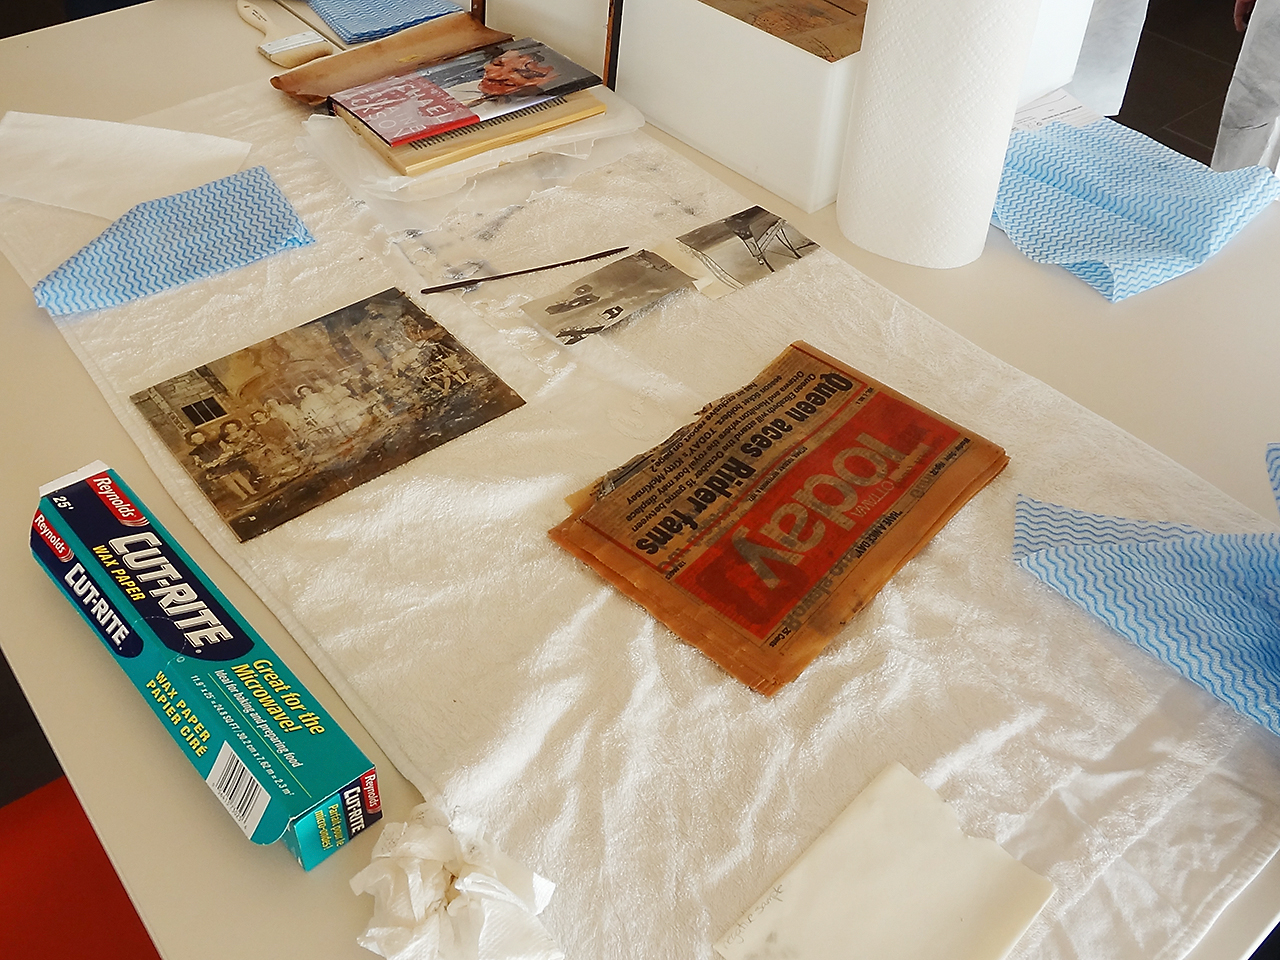 wet paper items laid out on a towel